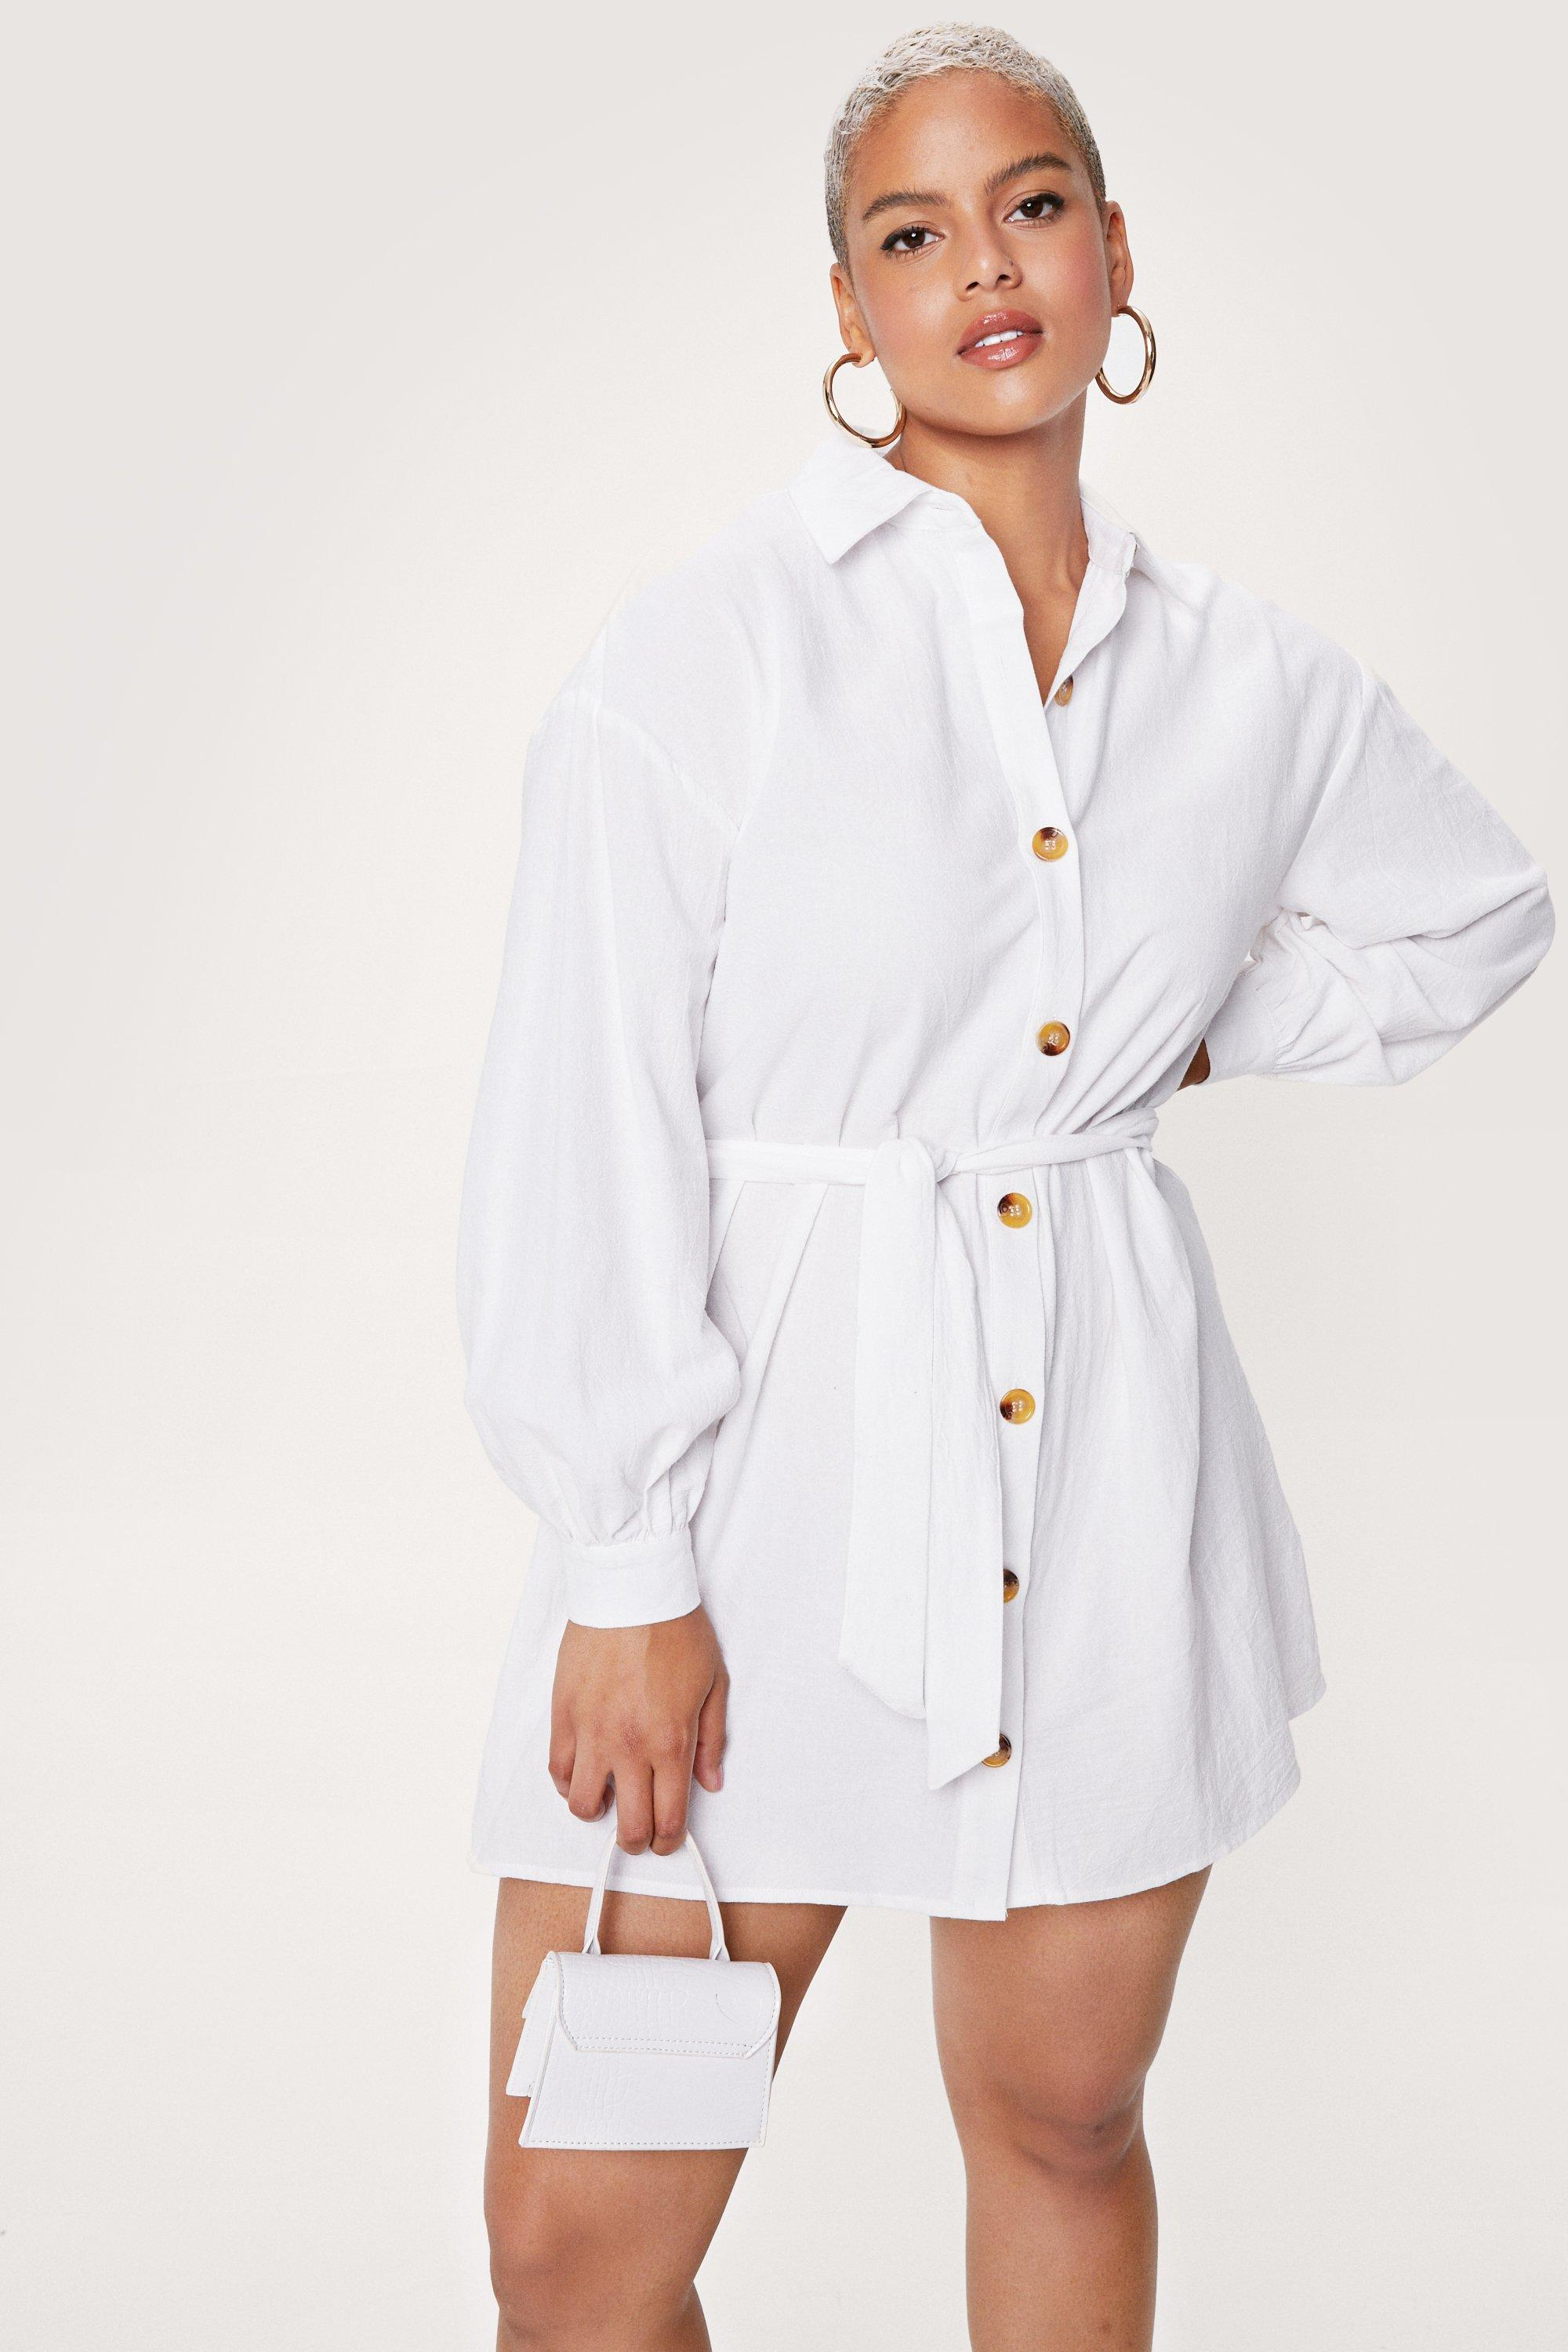 Plus 'Self Love' T-shirt Dress 7